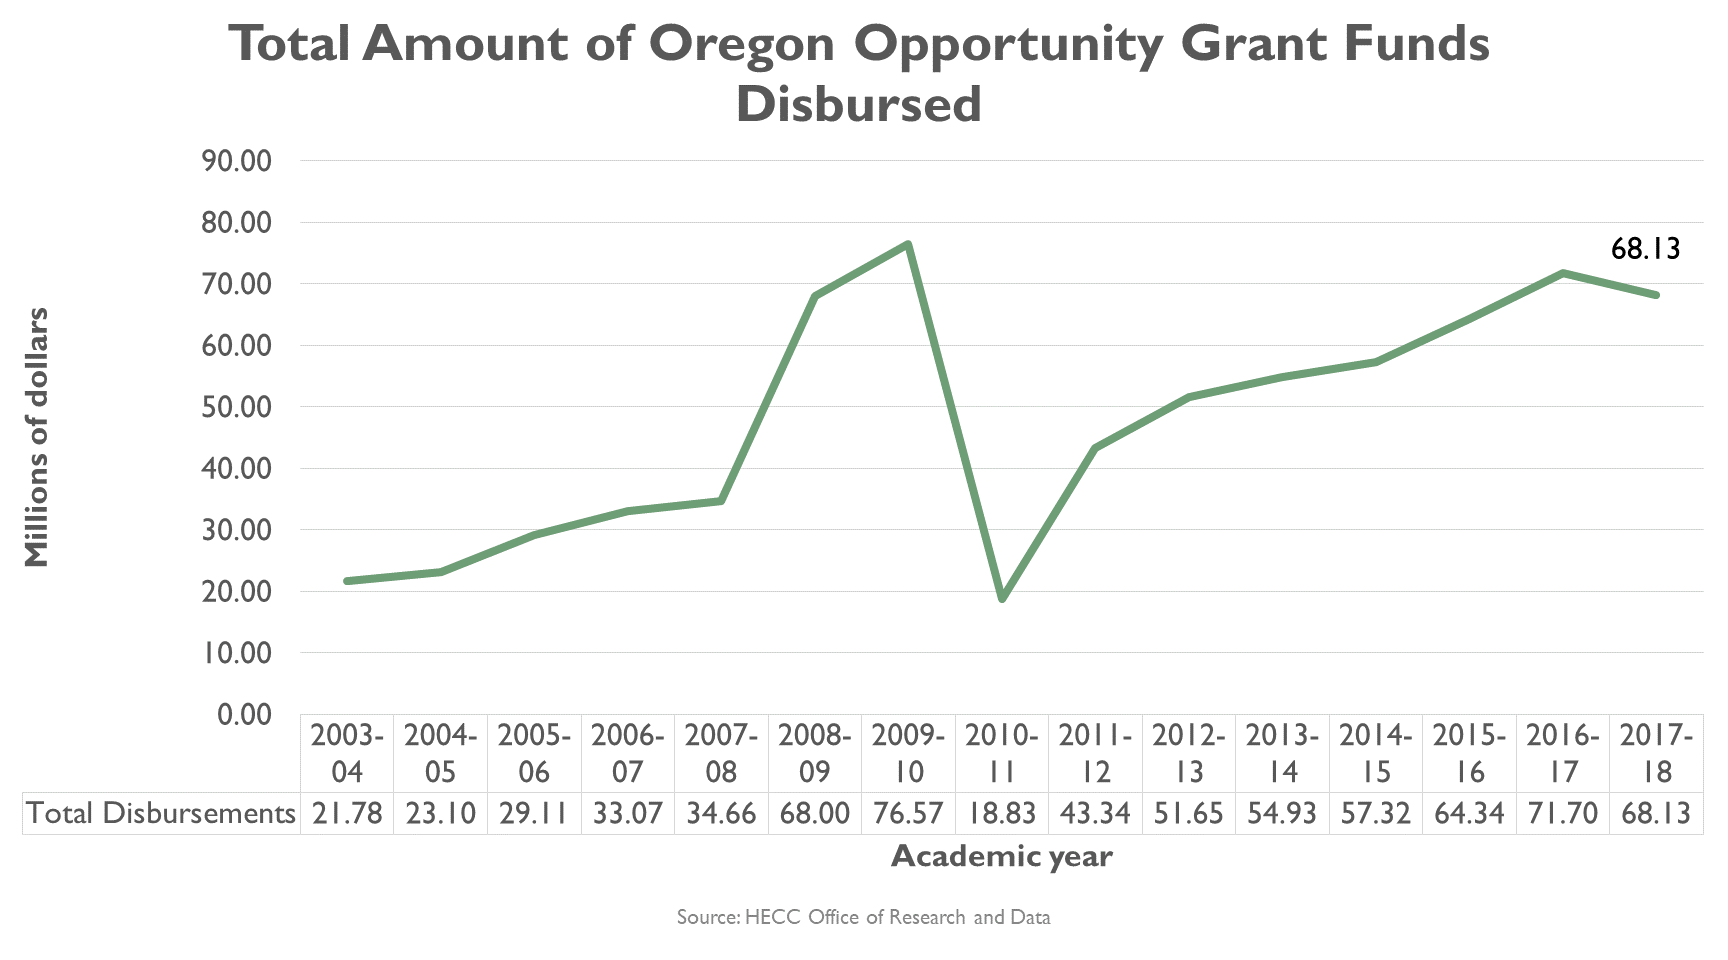 Total amount of Oregon Opportunity Grant Funds Disbursed, graph